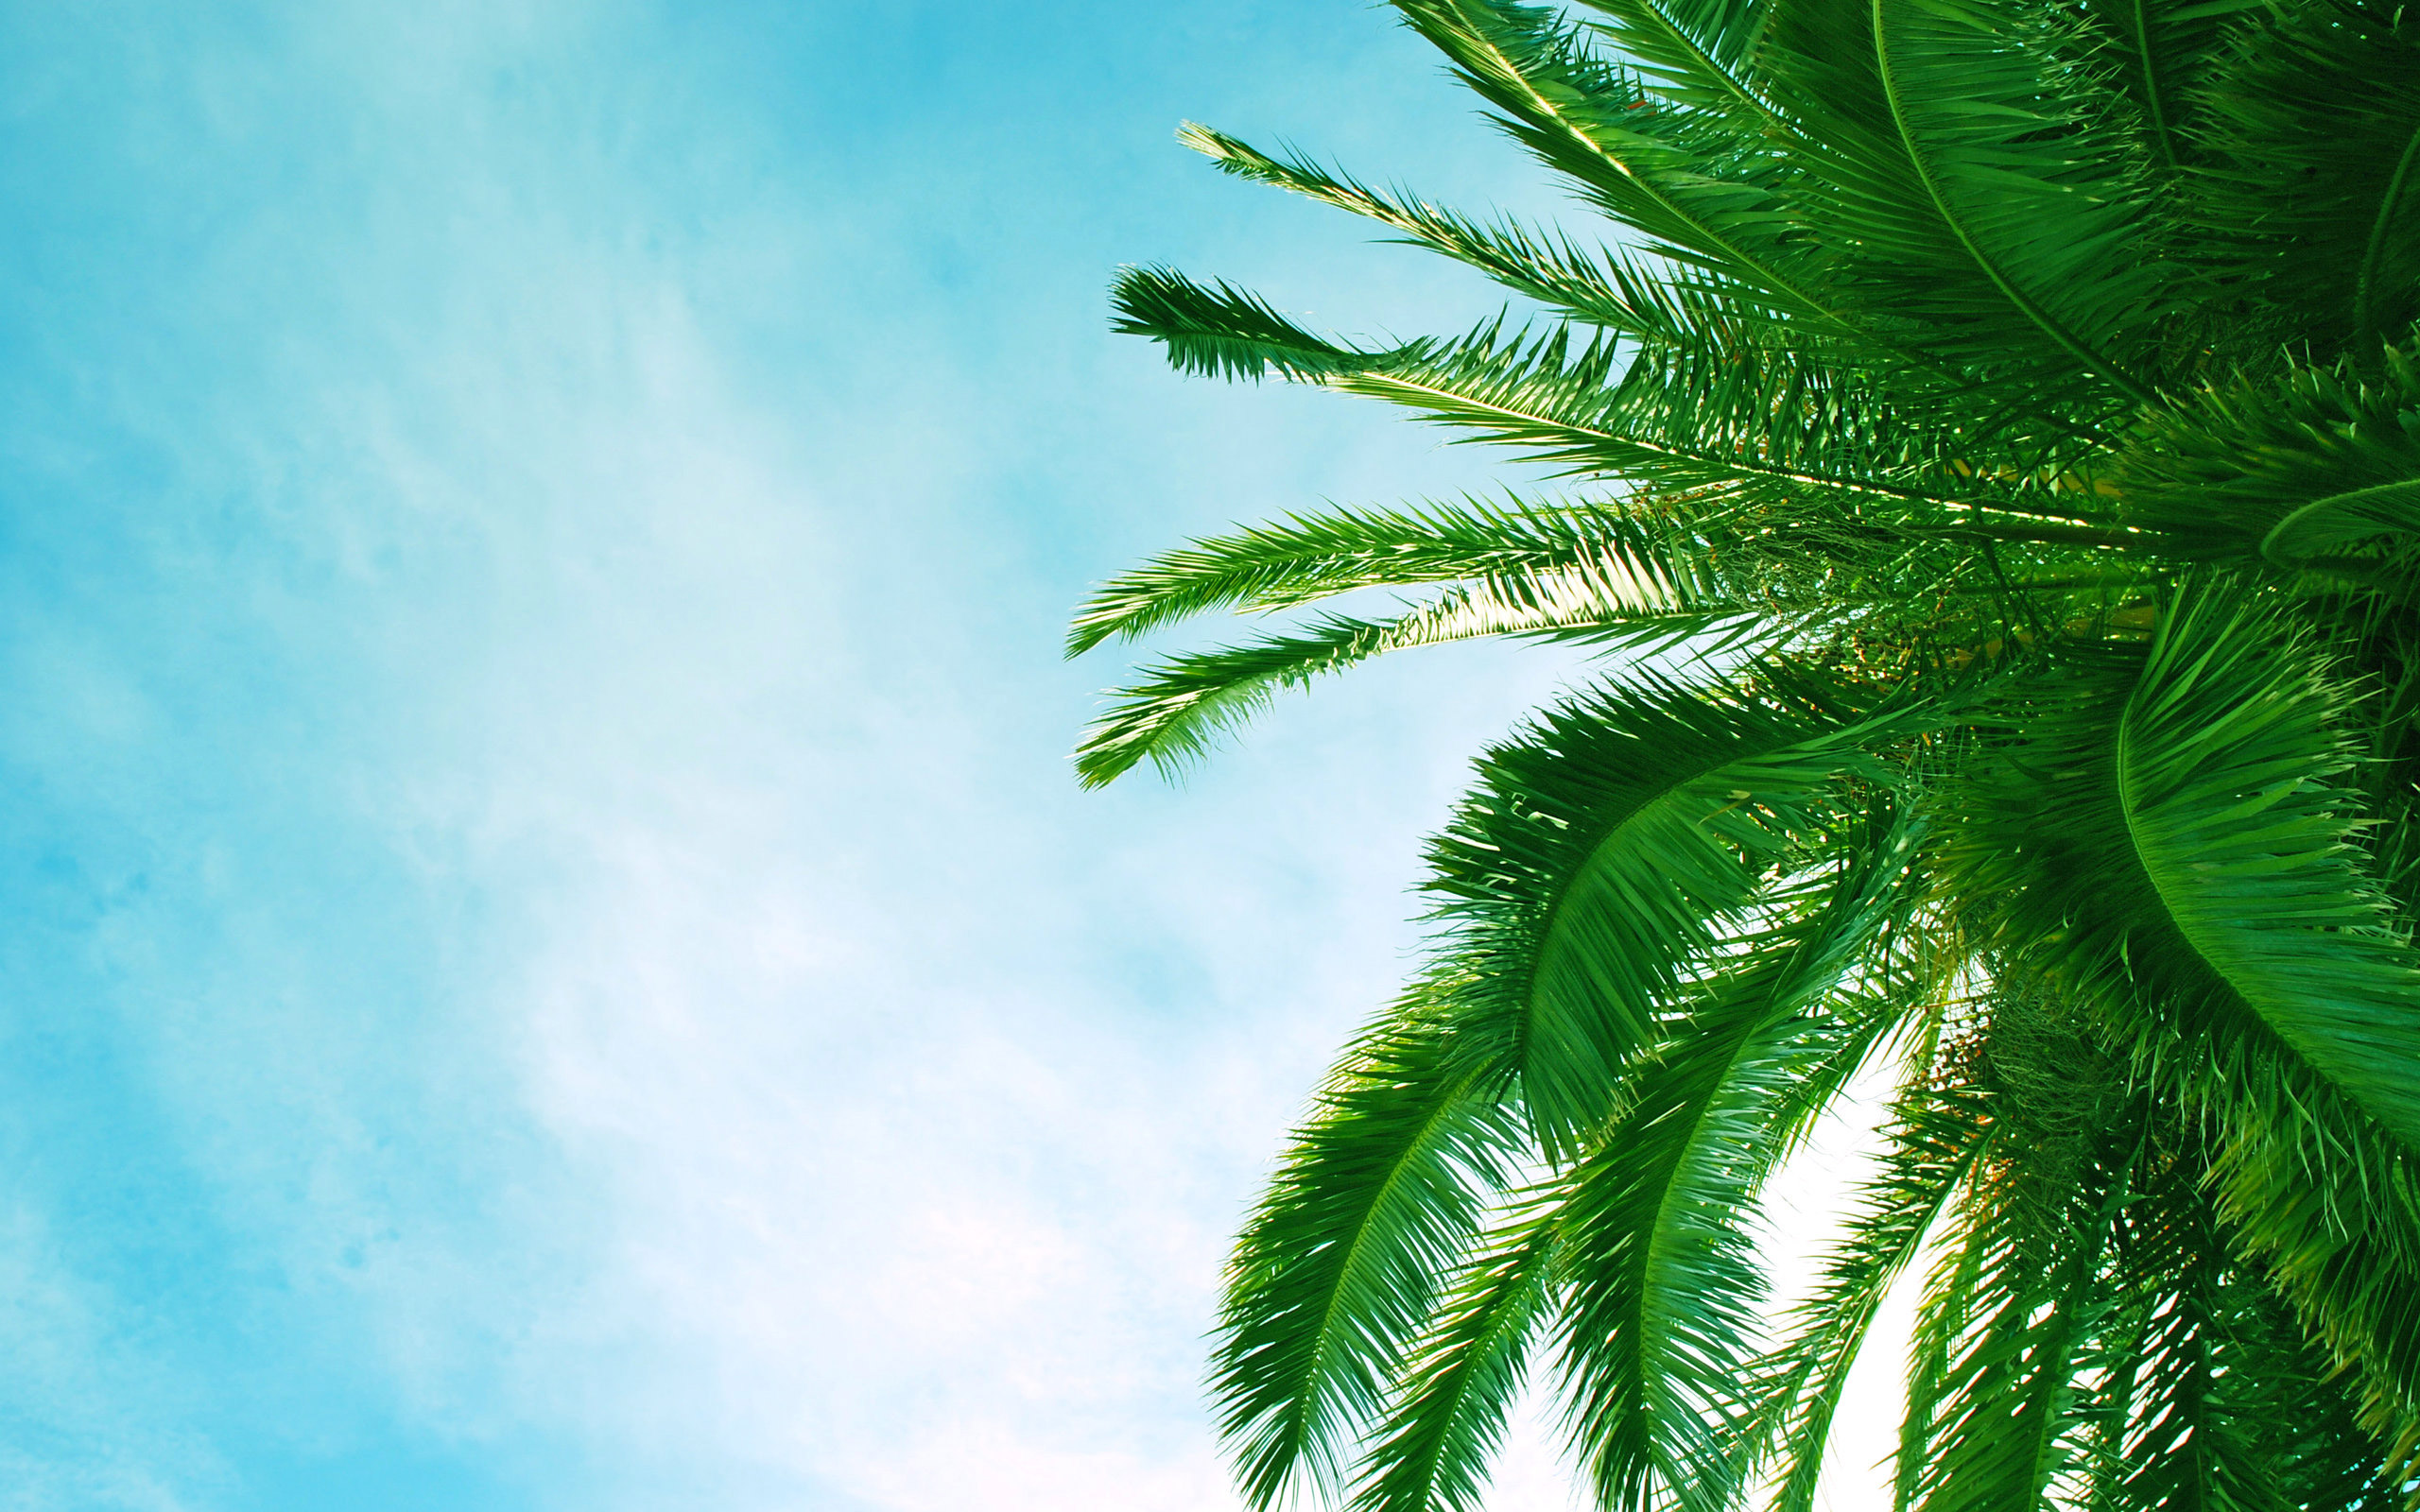 palm tree wallpaper 45857 2560x1600 px hdwallsource com